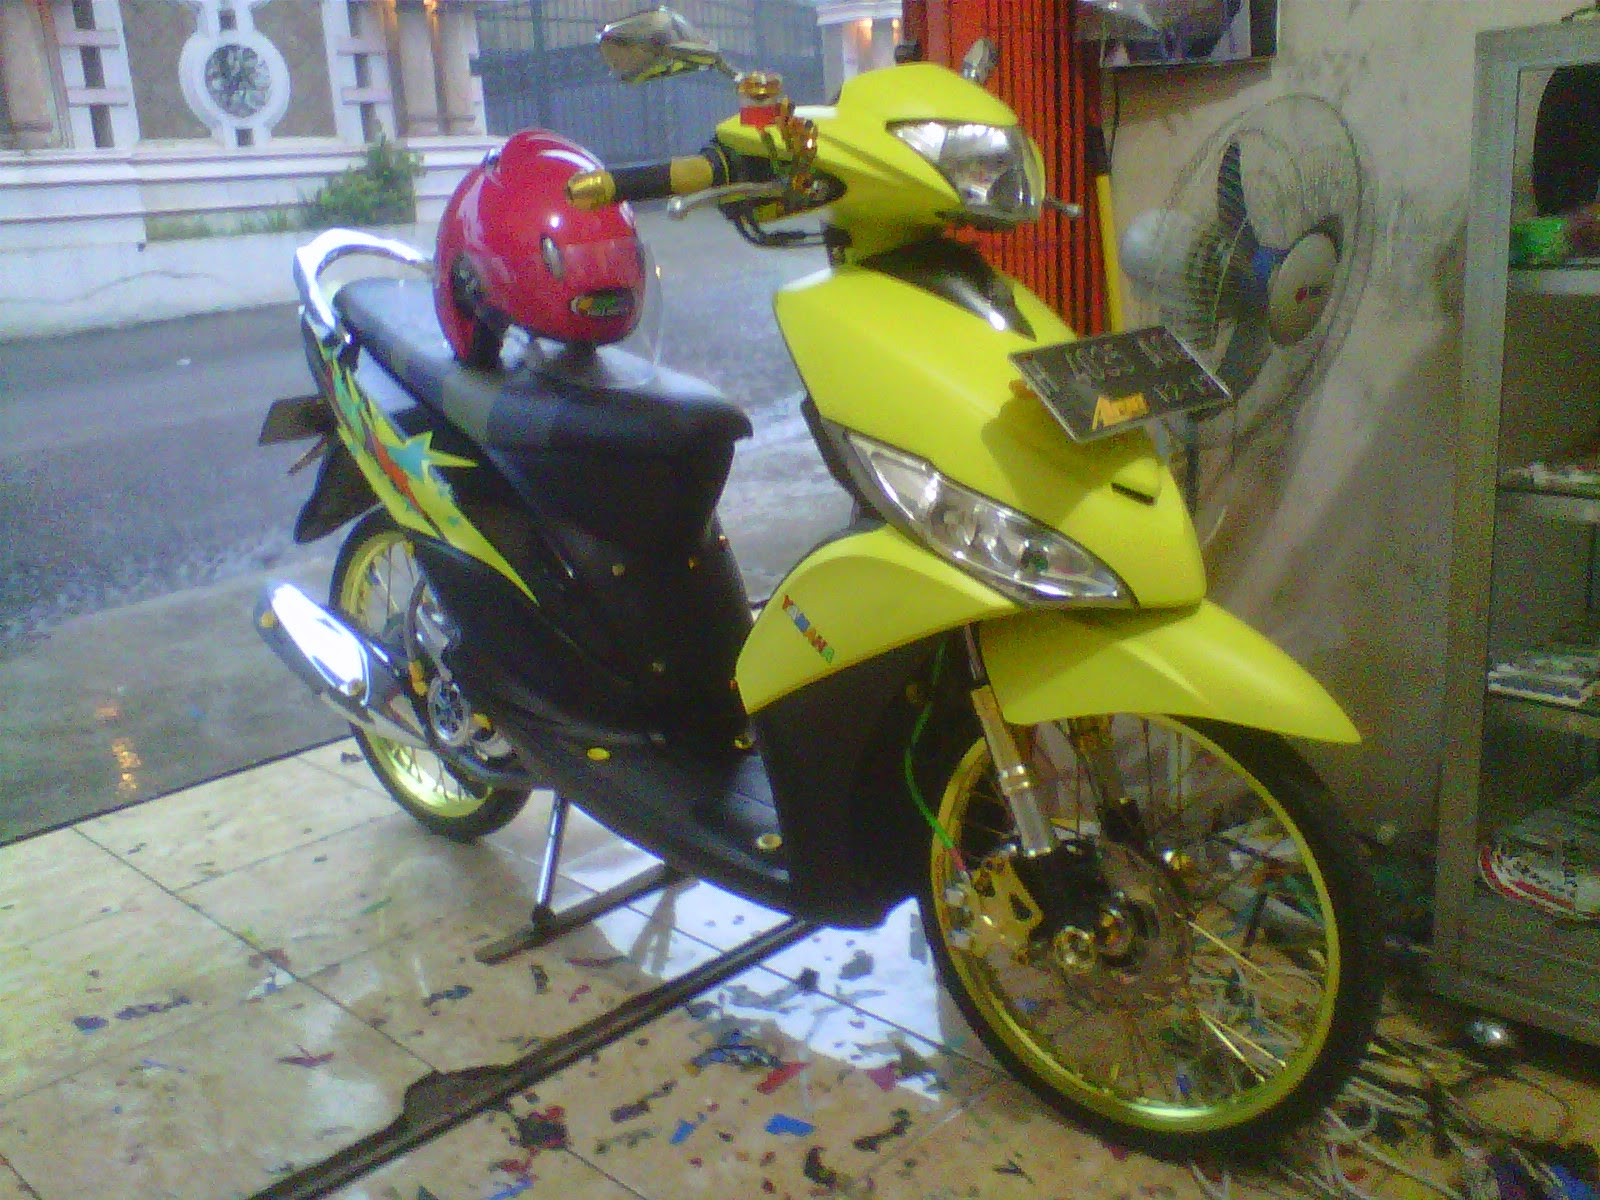 mio j thailook style paling bagus